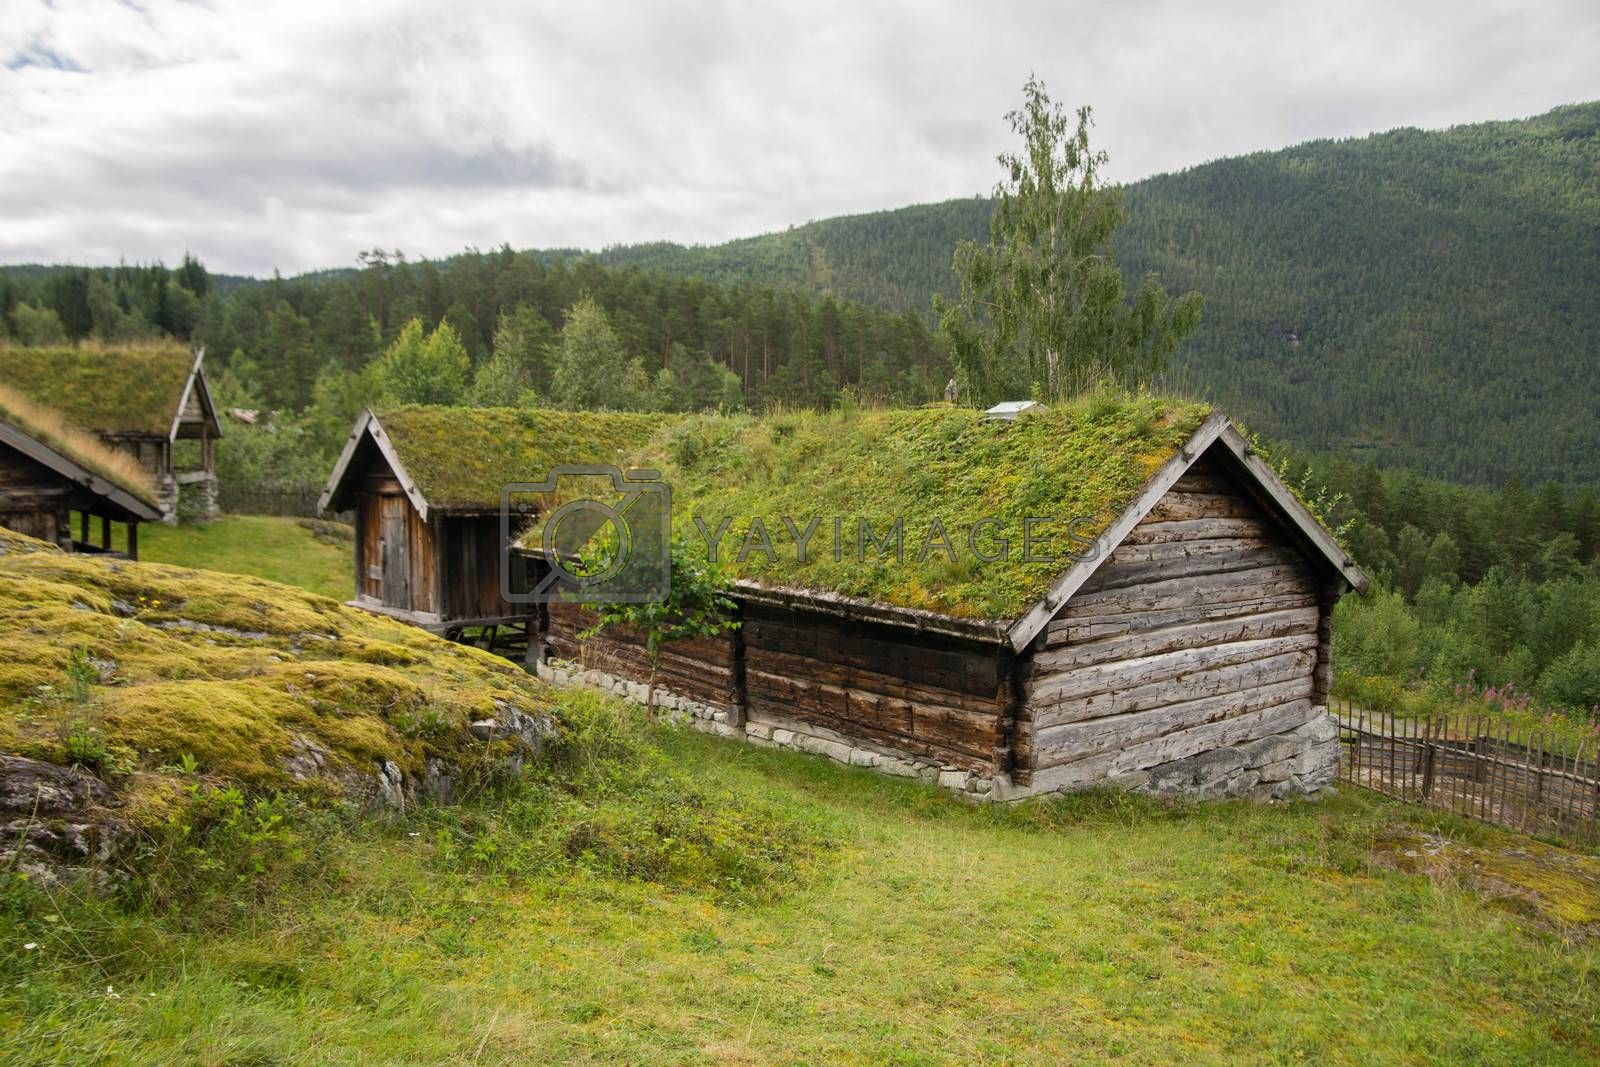 Old houses in ecomuseum in Norway by javax